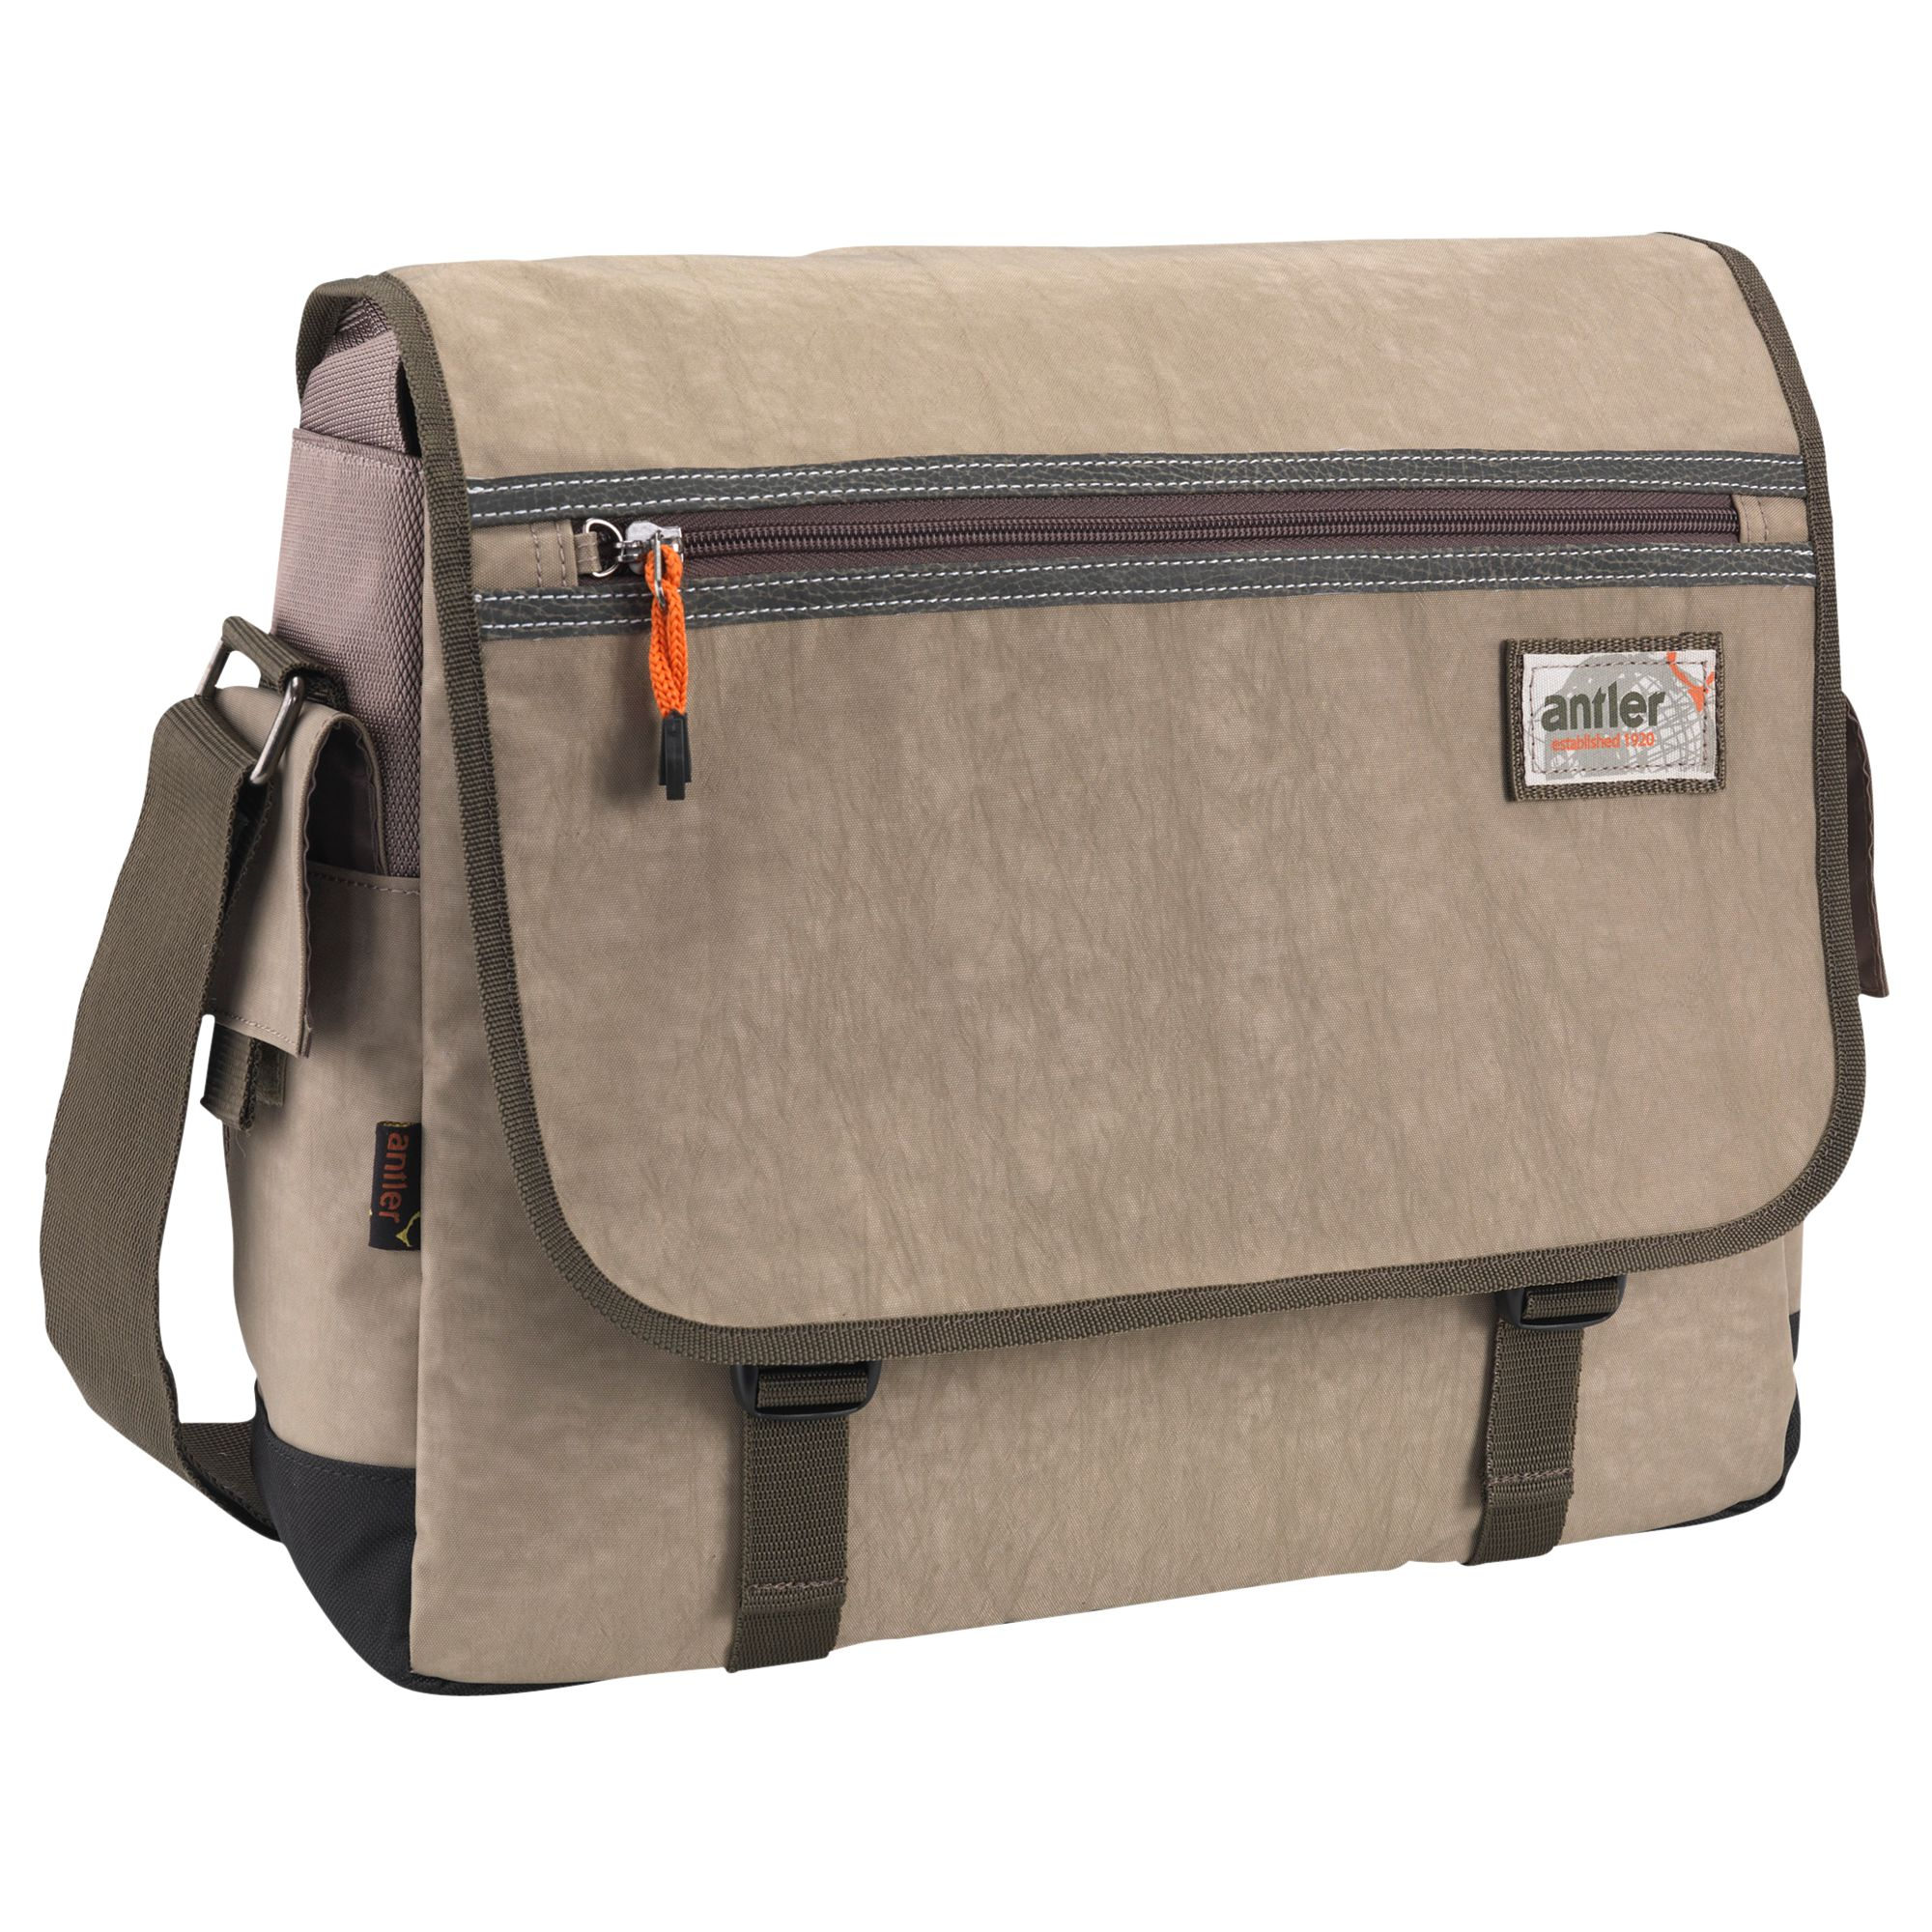 Antler Urbanite II Messenger Bag, Stone